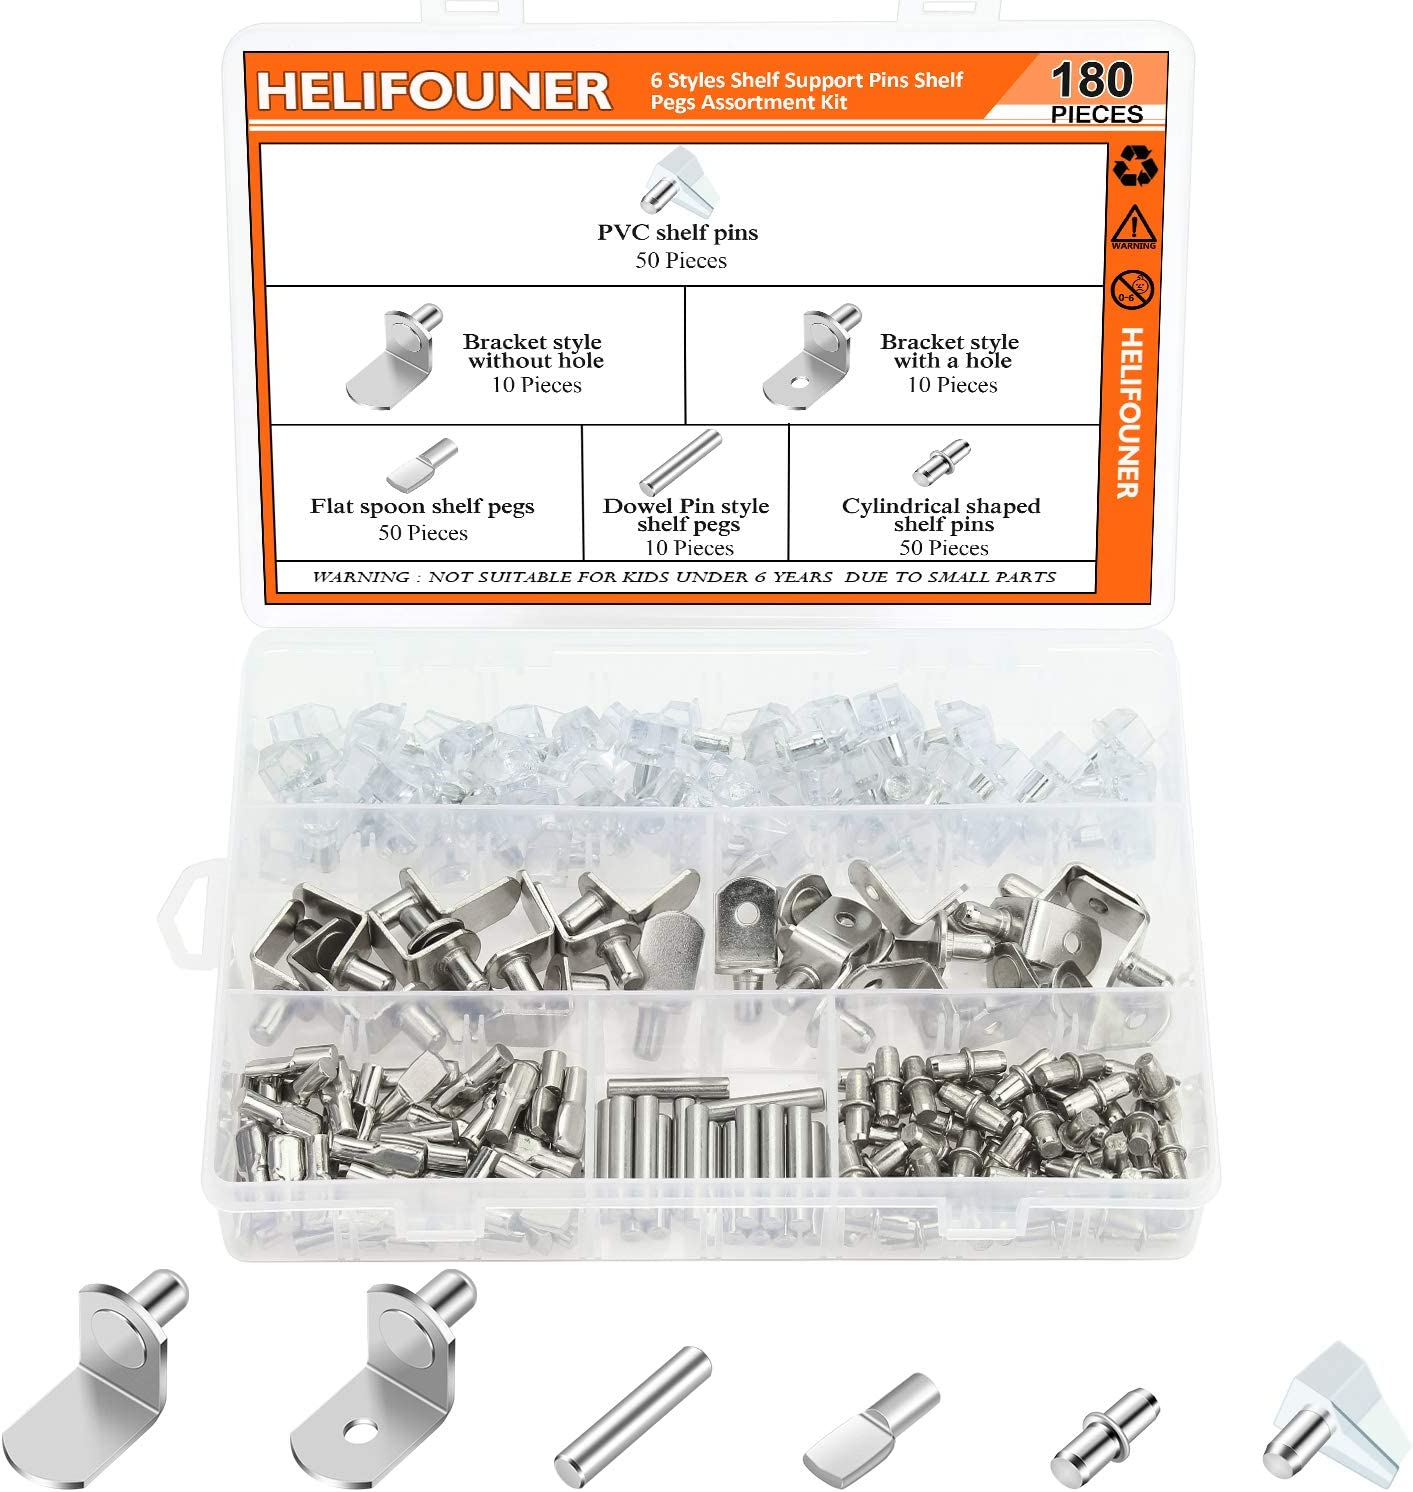 Bookcases HELIFOUNER 180 Pieces 6 Styles Shelf Pins Kit Top Quality Nickel Plated Shelf Bracket Pegs Cabinet Furniture Shelf Pins Support for Shelf Holes on Cabinets Entertainment Centers